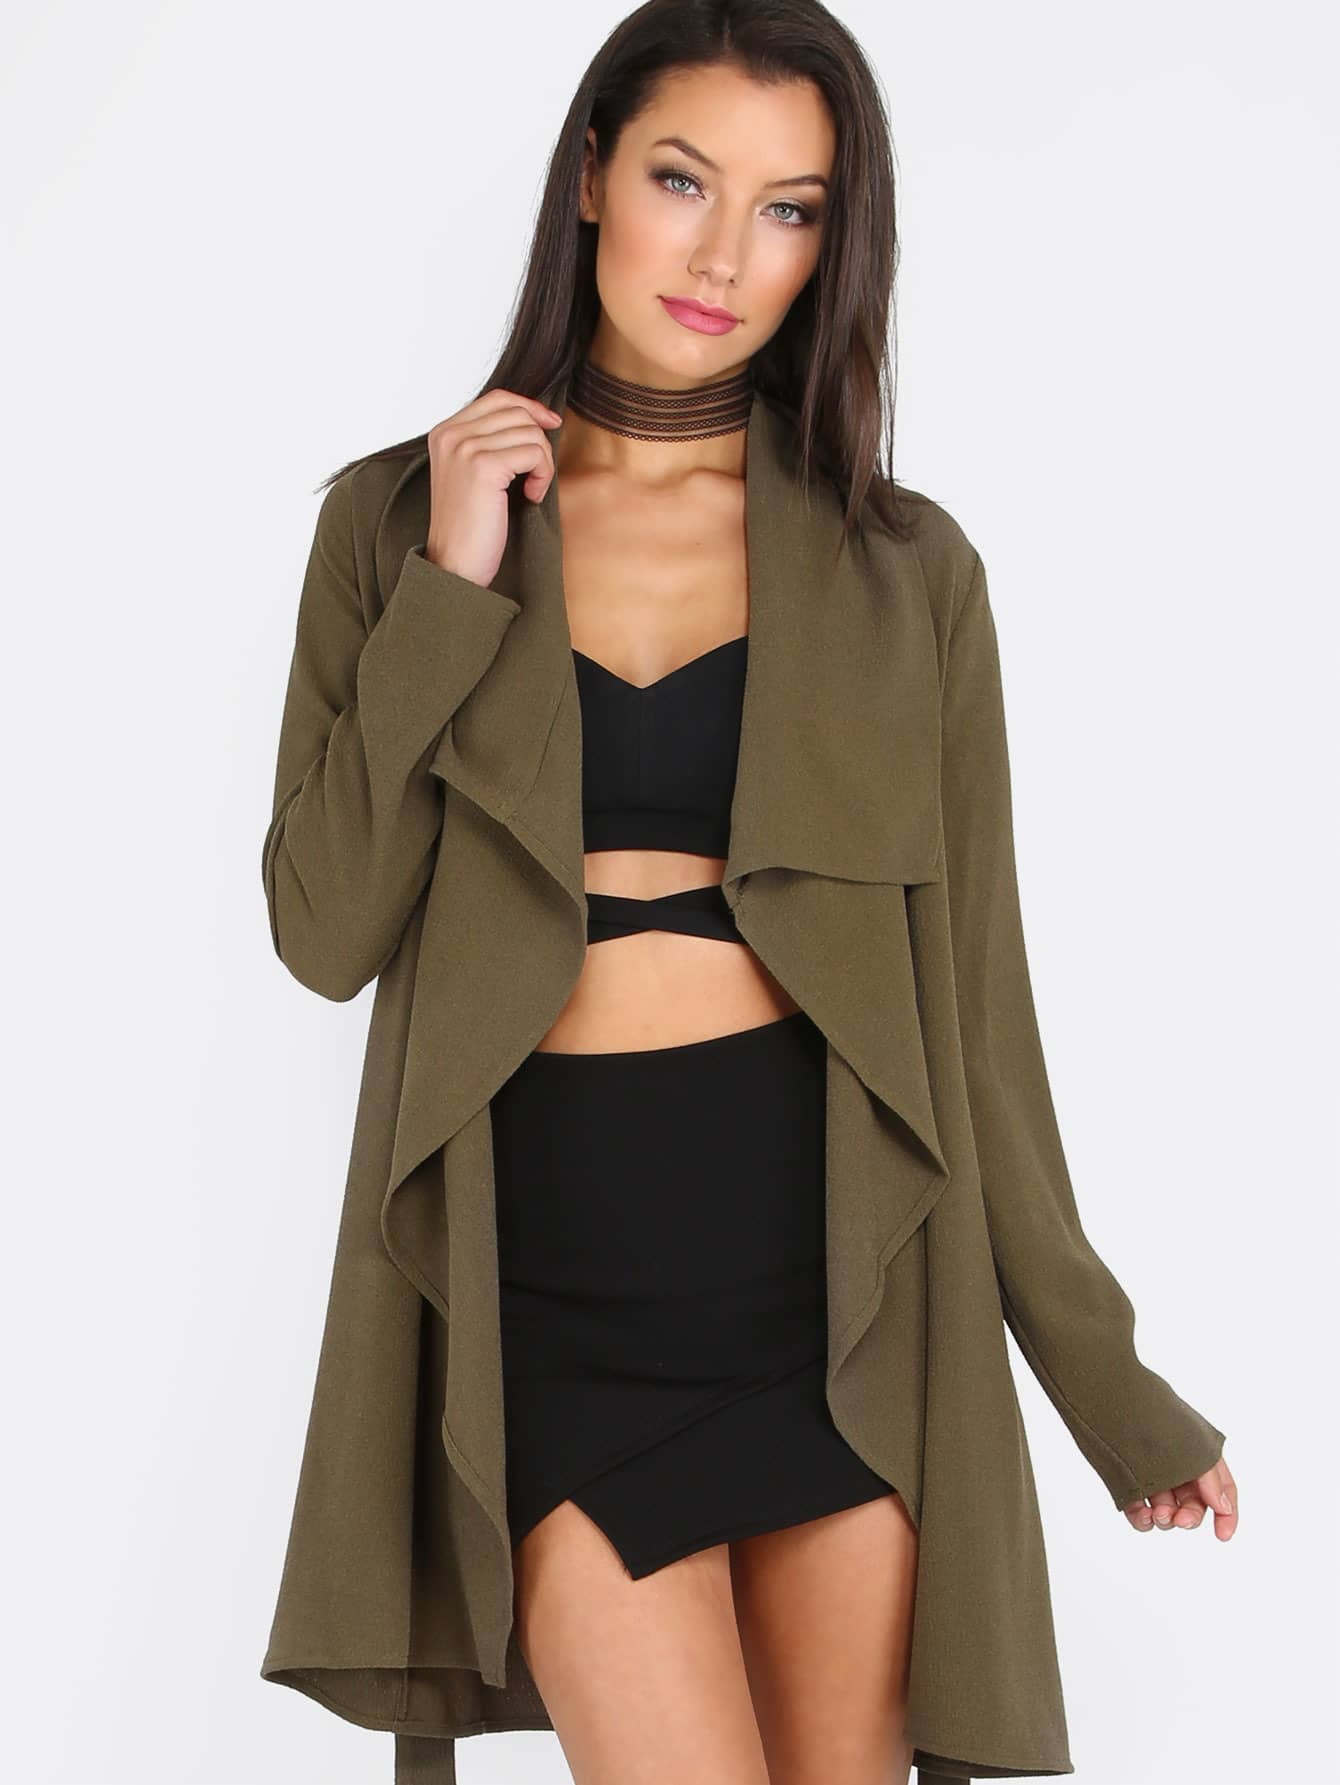 Army Green Lapel Tie Long Sleeve Outerwear cougar 530m army green